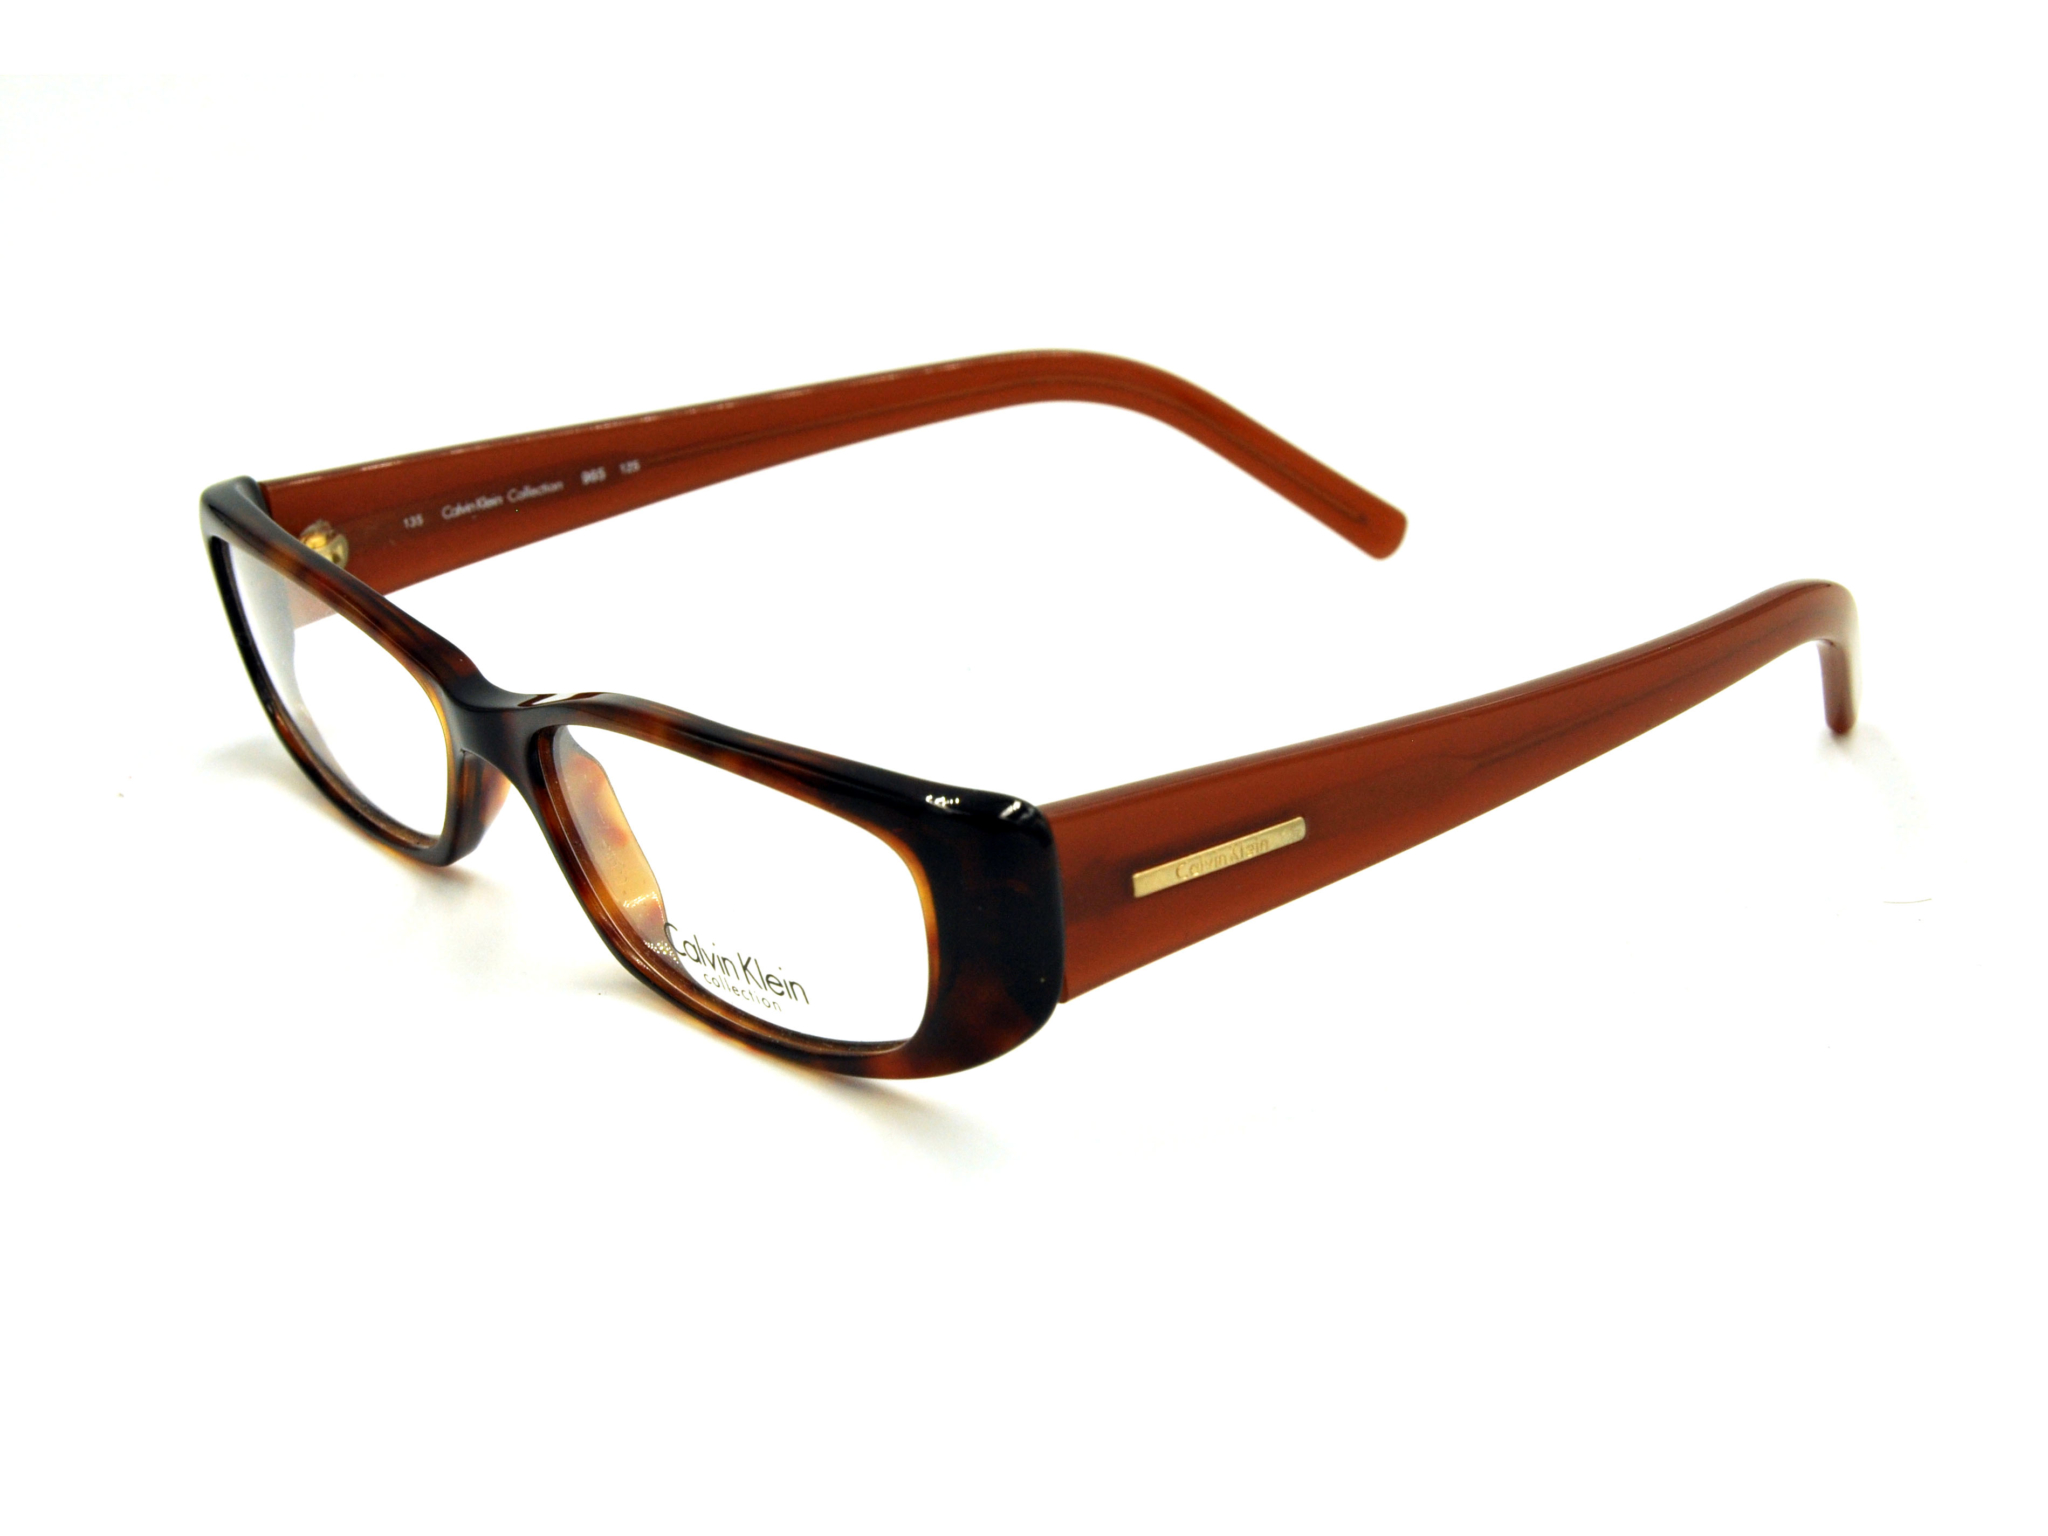 CALVIN KLEIN CK965 125 Prescription Glasses 2020